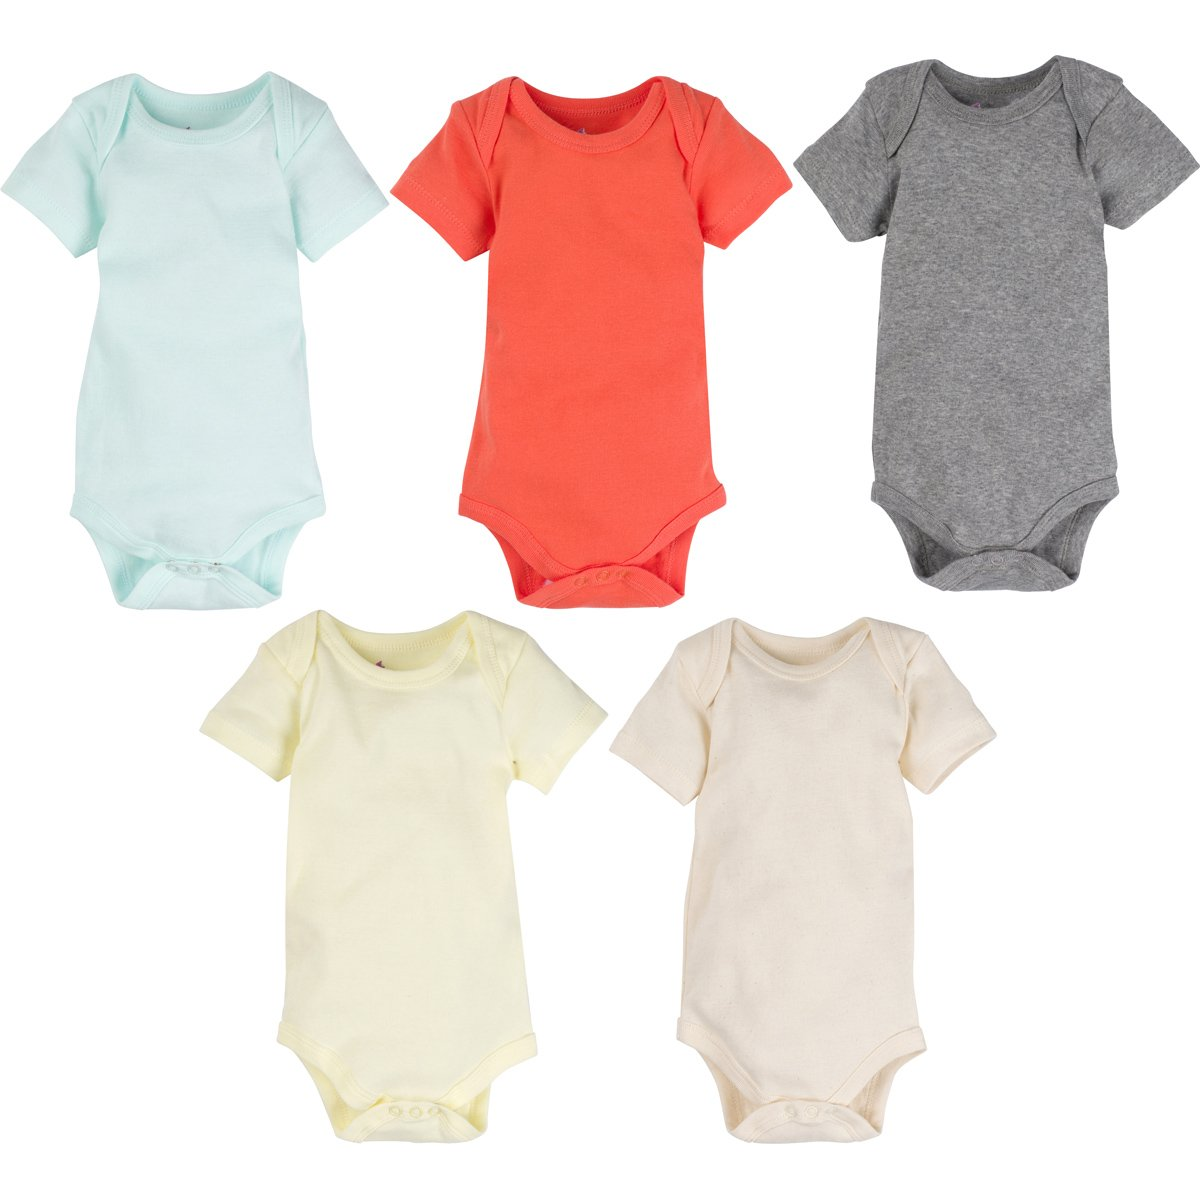 MiracleWear 5-Pack Neutral Unisex Solid Color/Solid White Infant Low Cost Bodysuits Boy Girl Newborn Baby